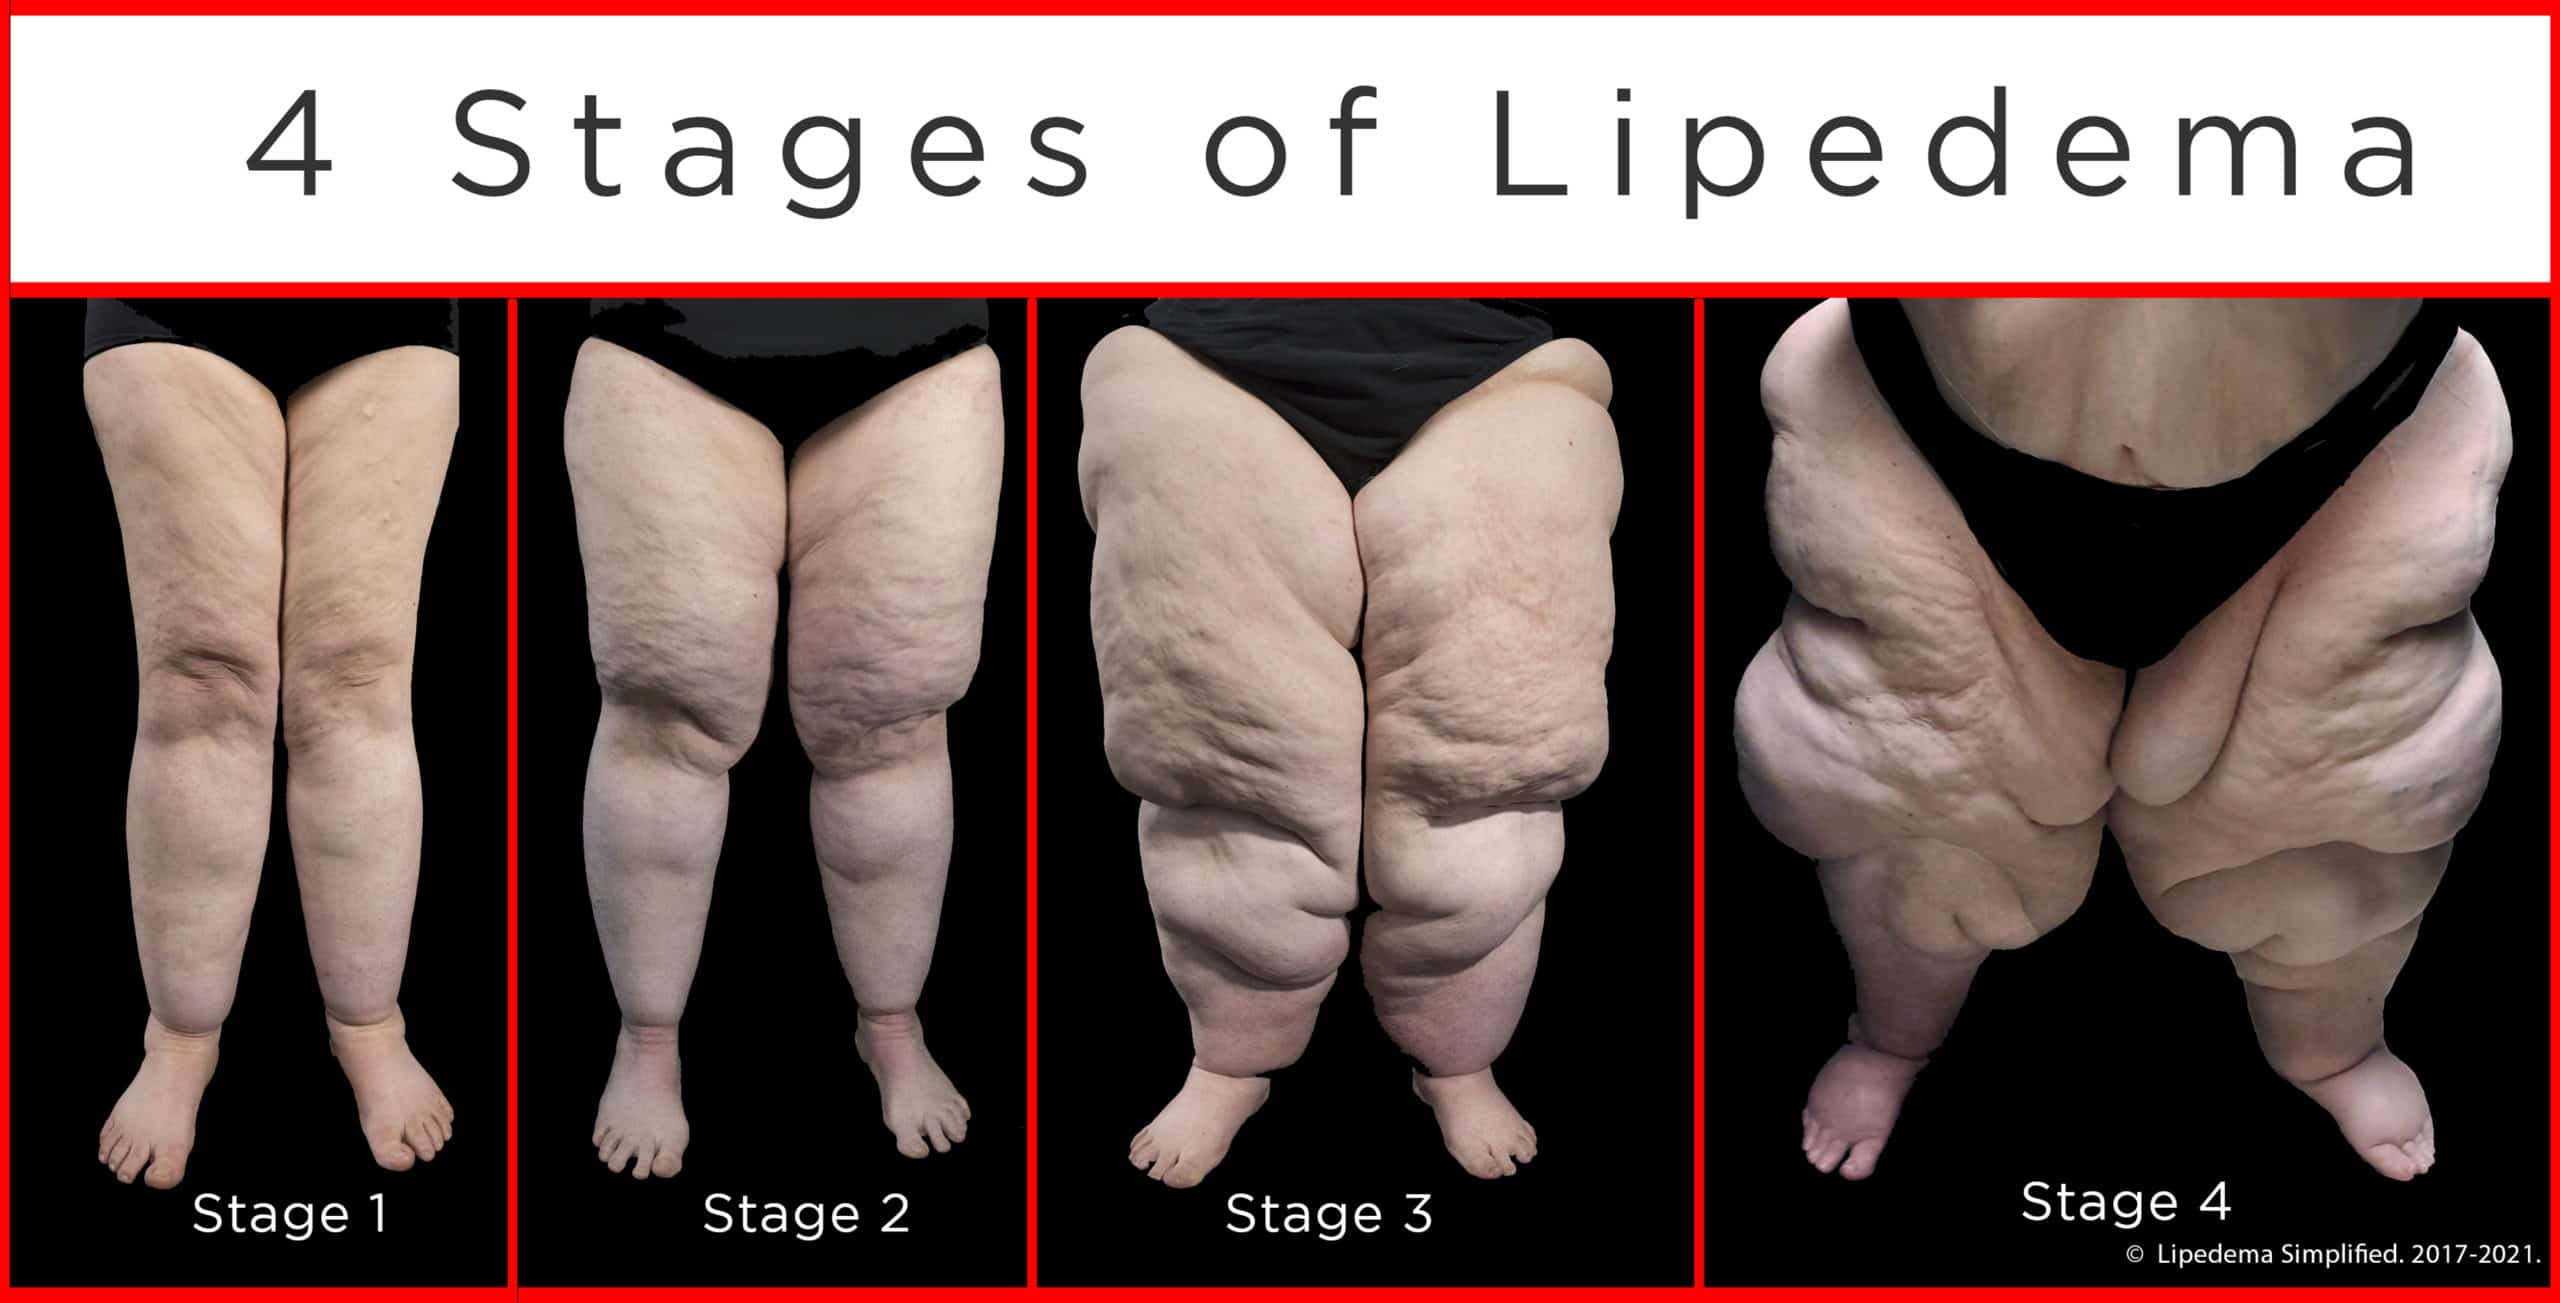 4 stages of lipedema